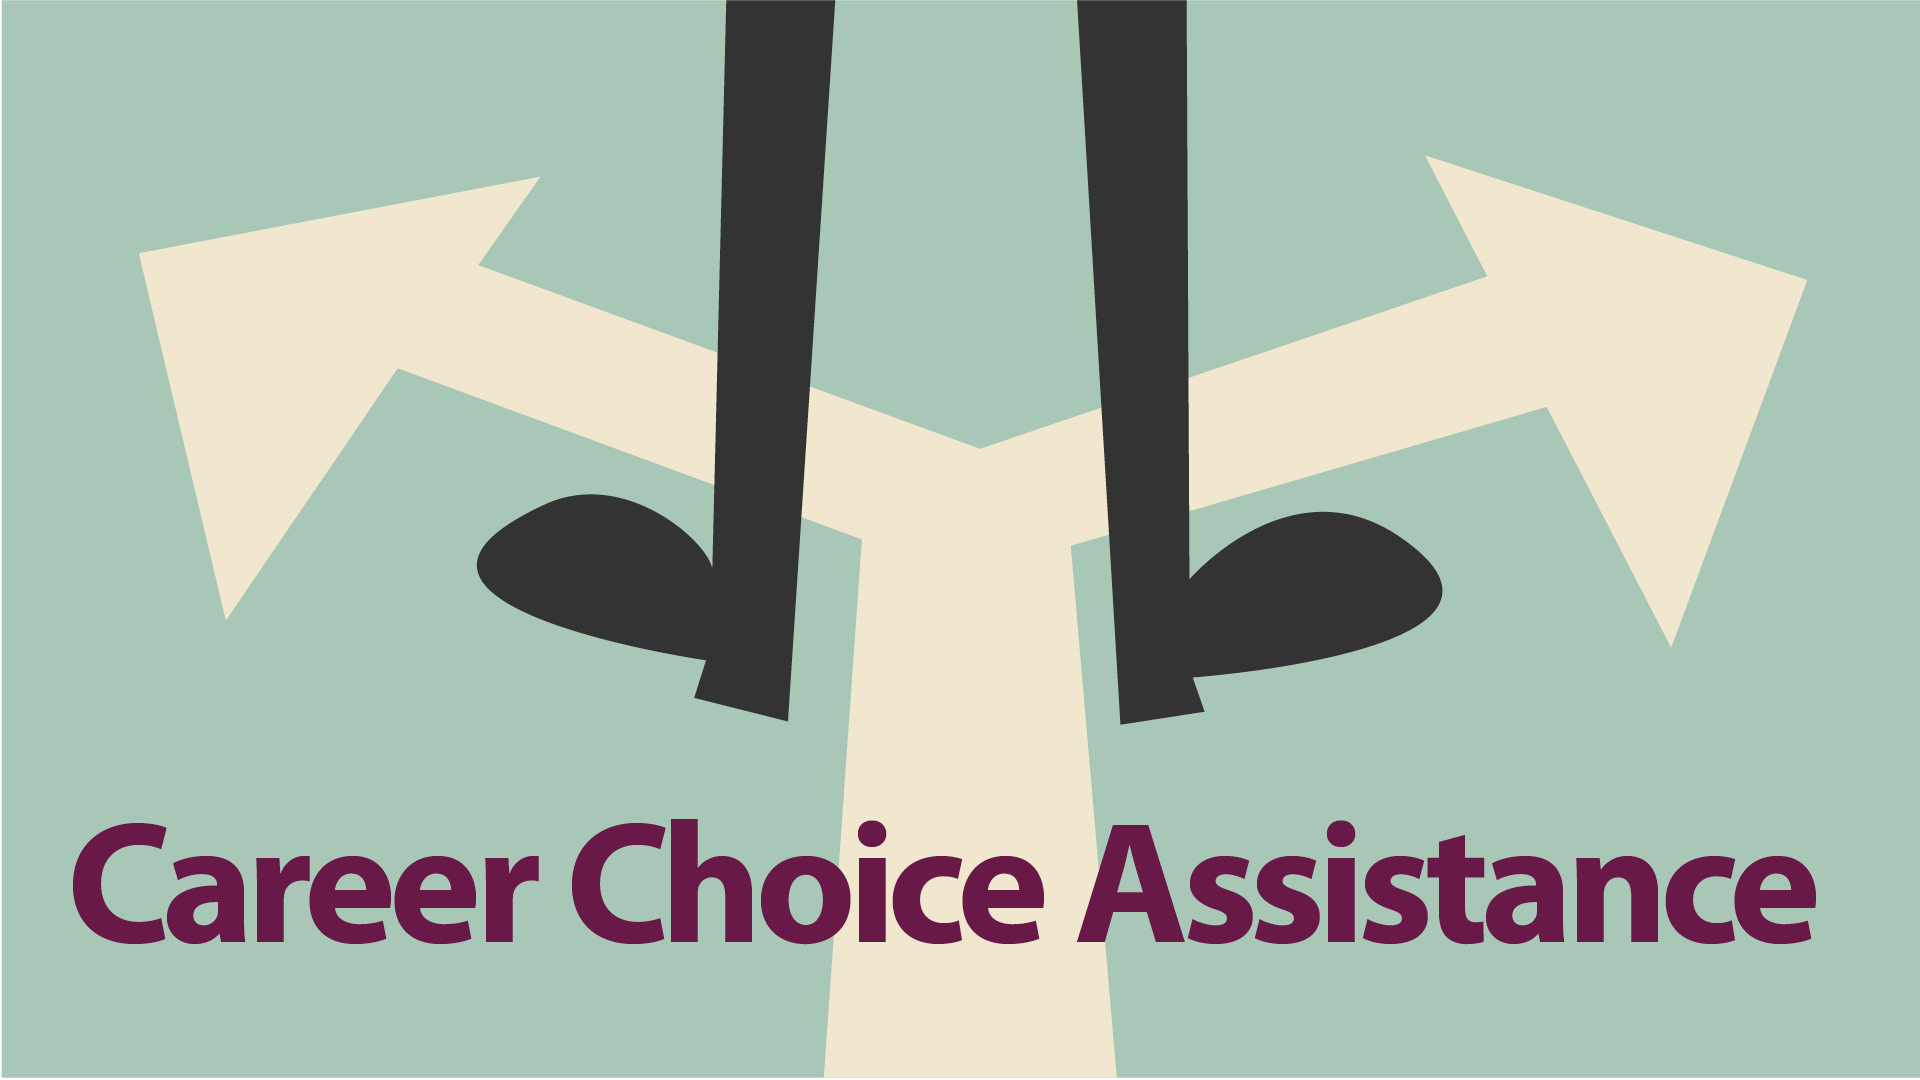 Need Career Choice Assistance?